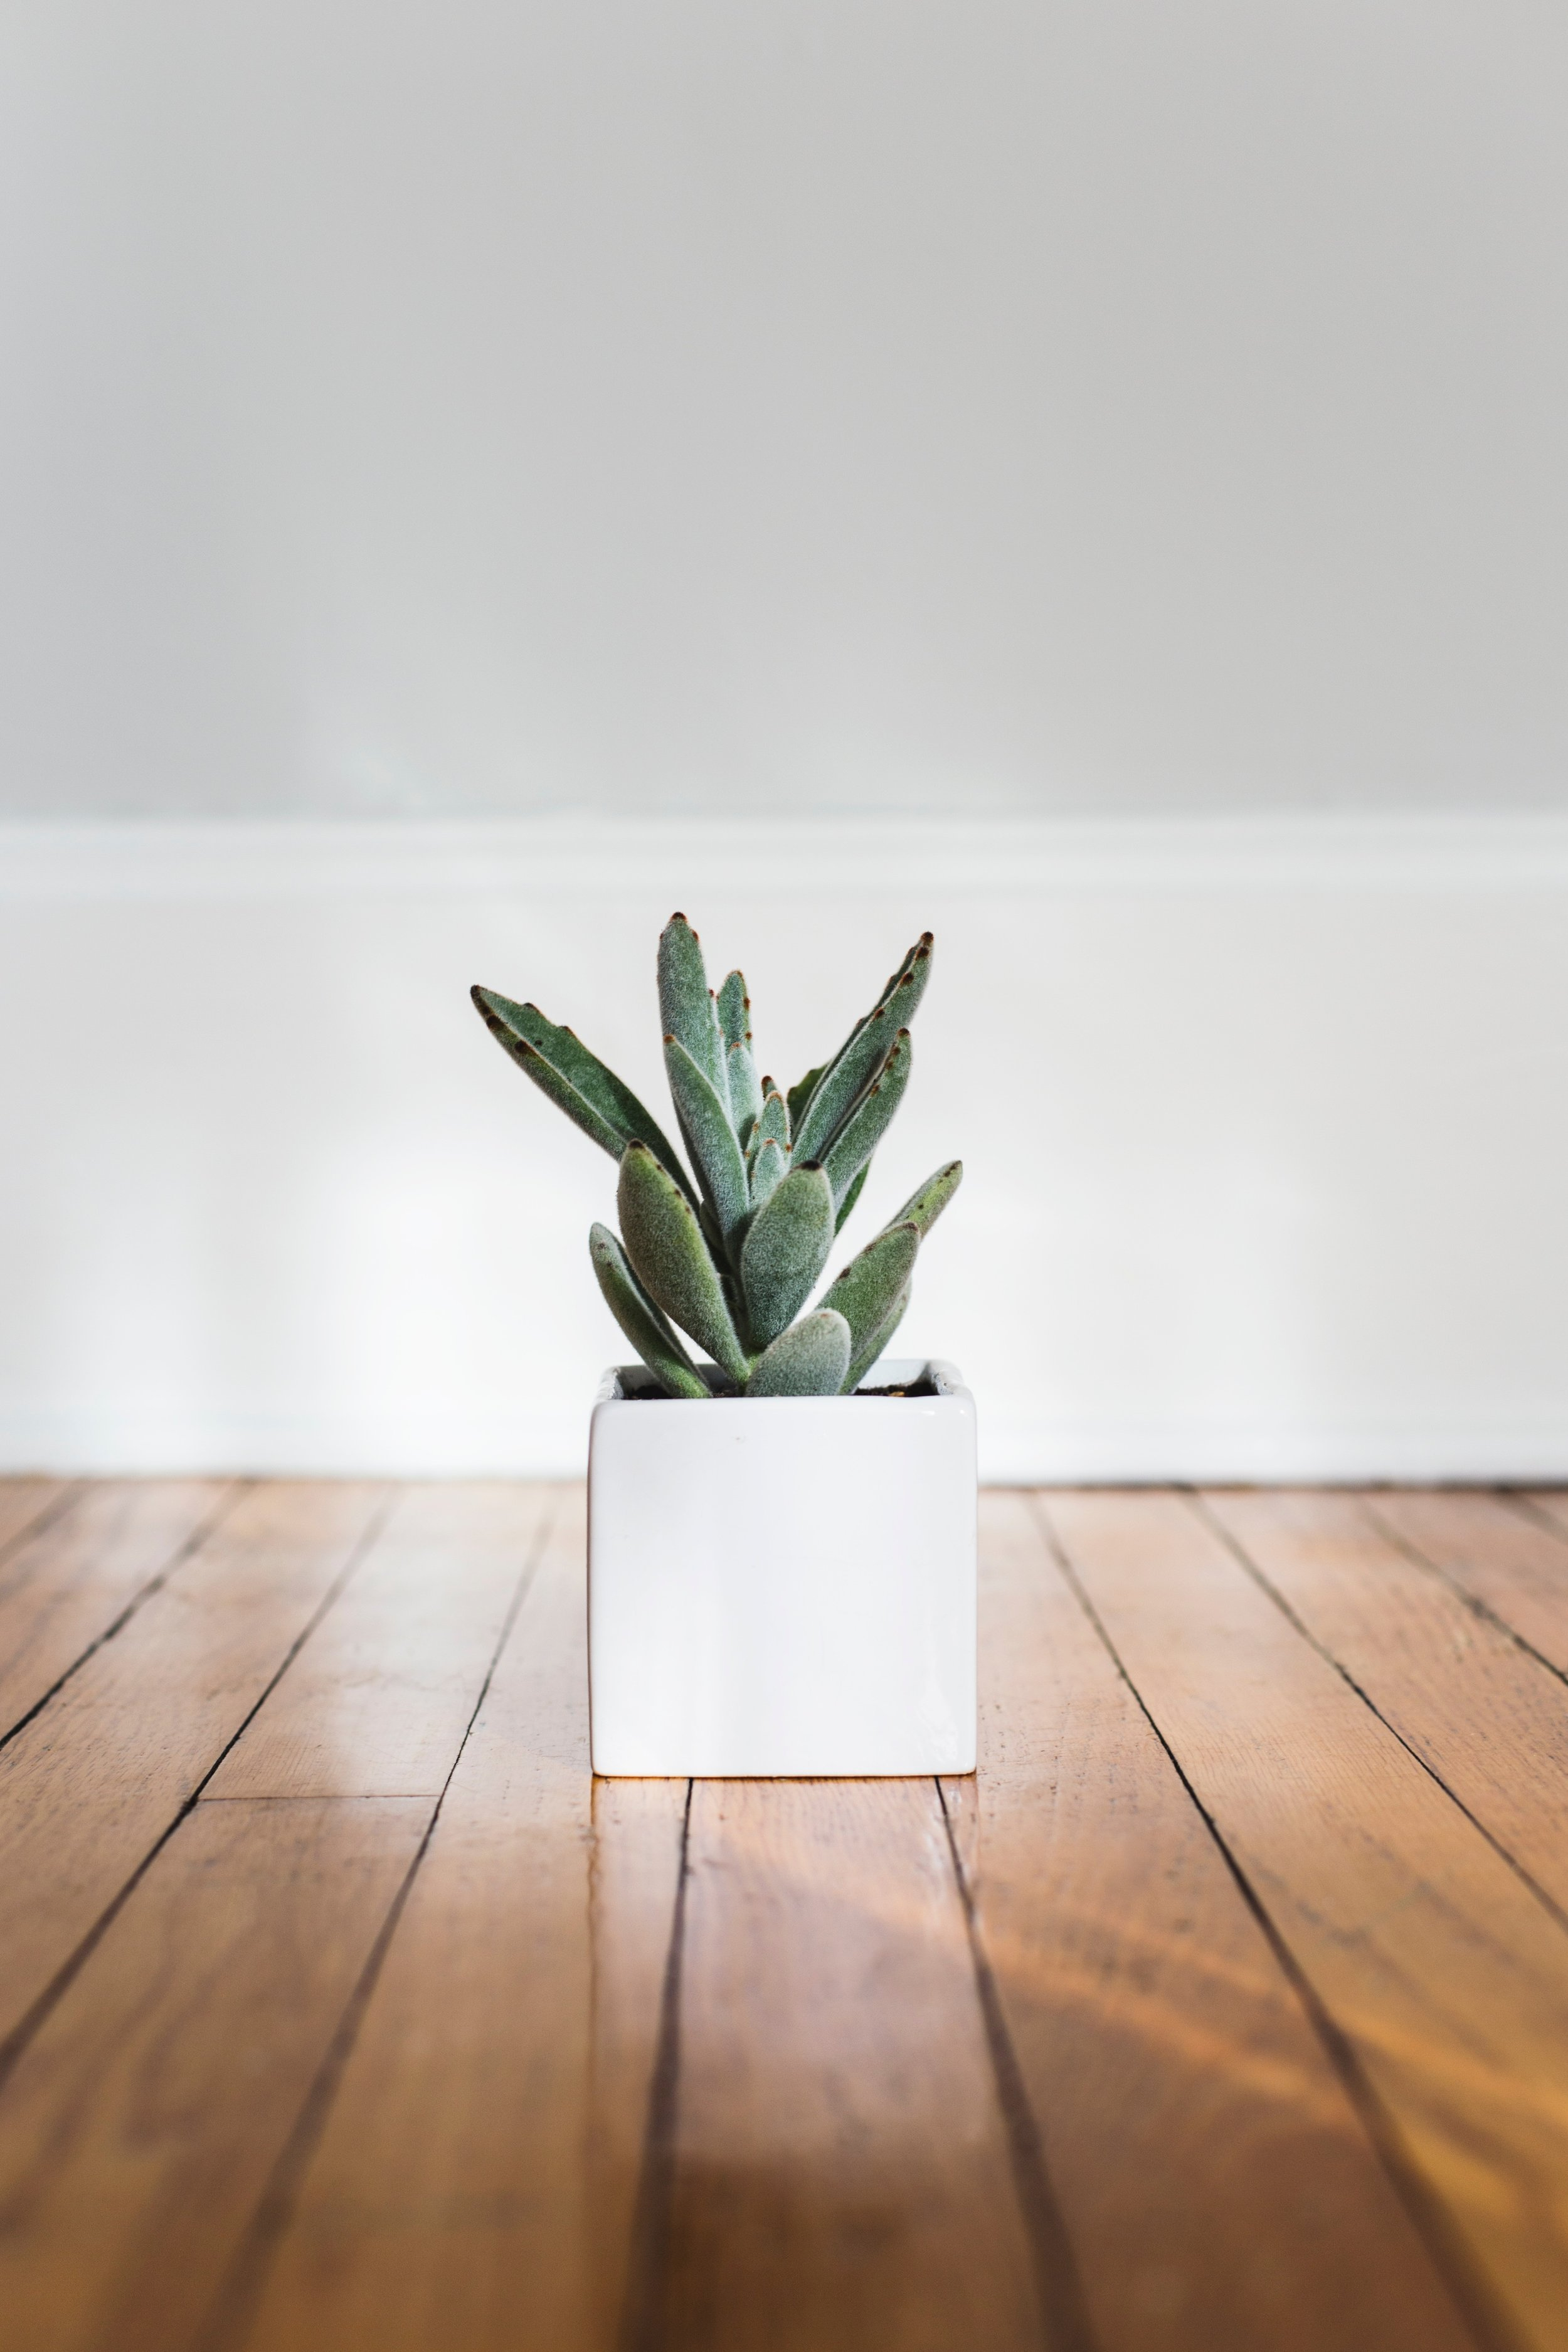 Do you believe these indoor plant care myths? - Here are a few mistaken assumptions about houseplant care I've picked up along the way.